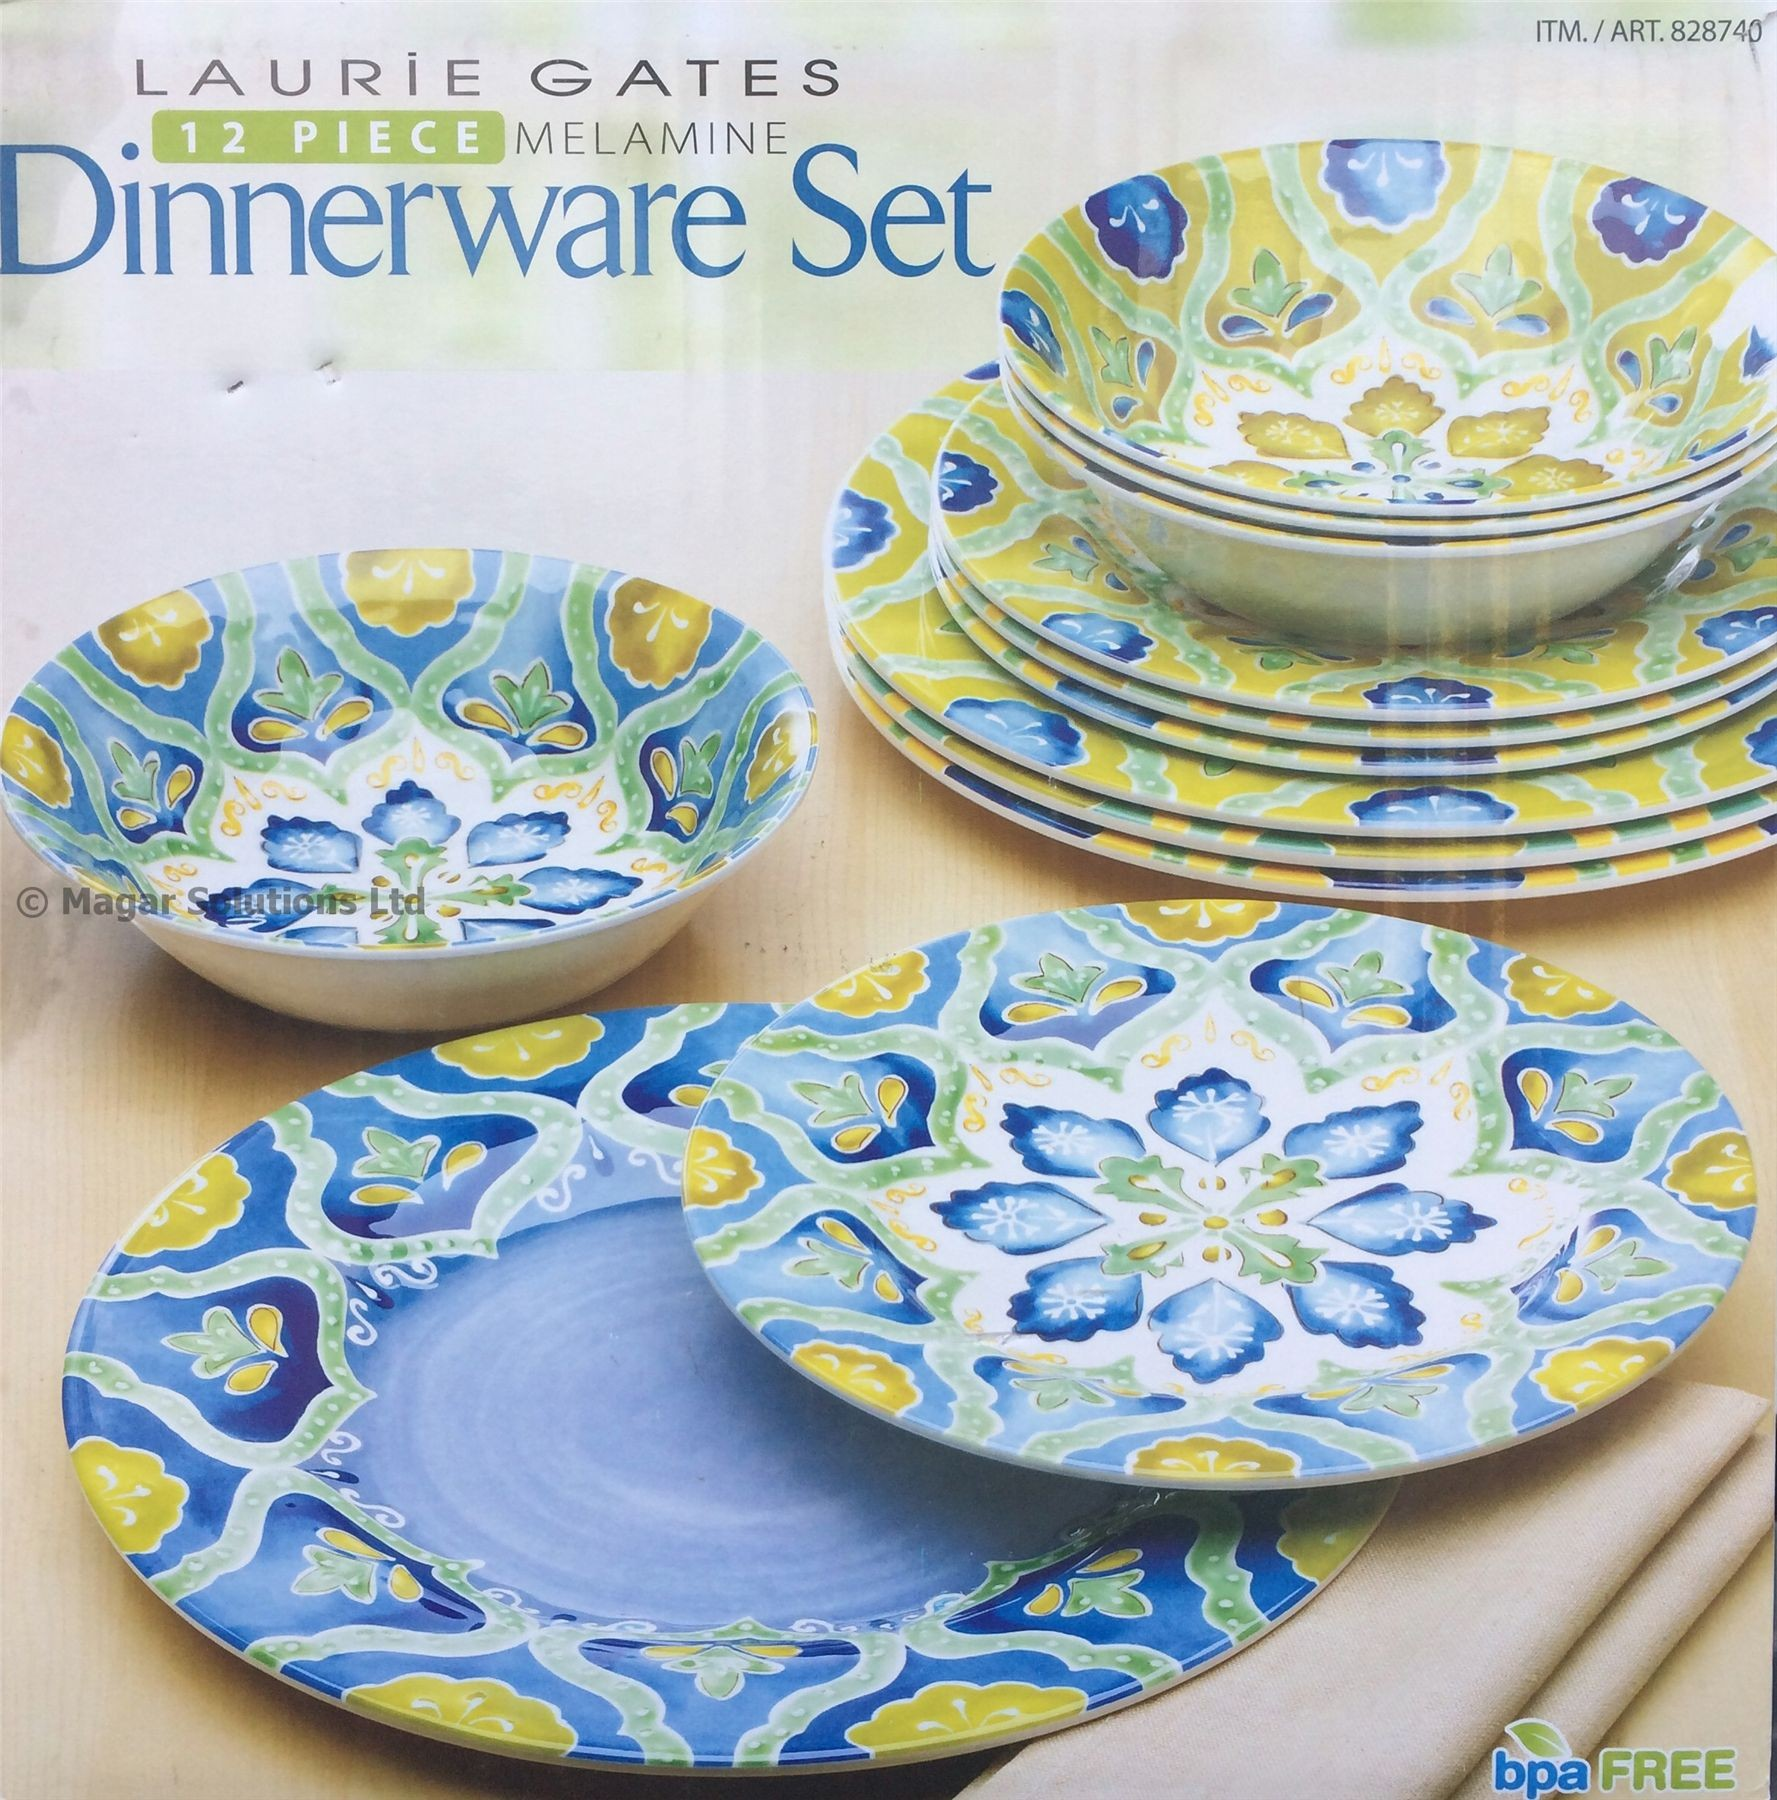 Laurie Gates Plates 12 Piece Melamine Dinnerware Set  sc 1 st  Outdoor Designs & Outdoor Dinnerware Sets Melamine Uk - Outdoor Designs